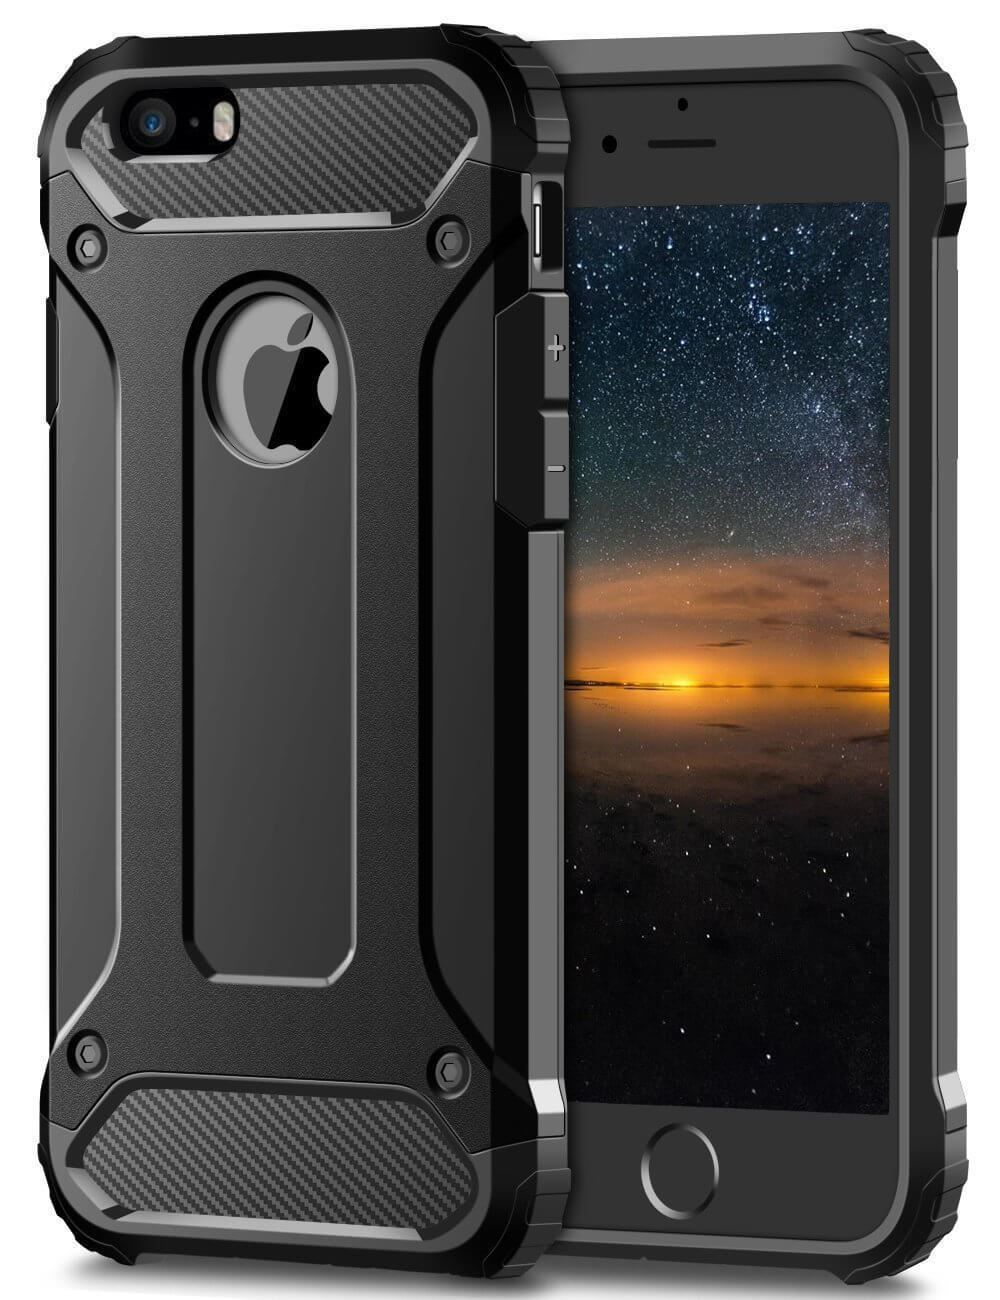 Hybrid-Armor-Shockproof-Rugged-Bumper-Case-For-Apple-iPhone-10-X-8-7-Plus-6s-5s miniature 30